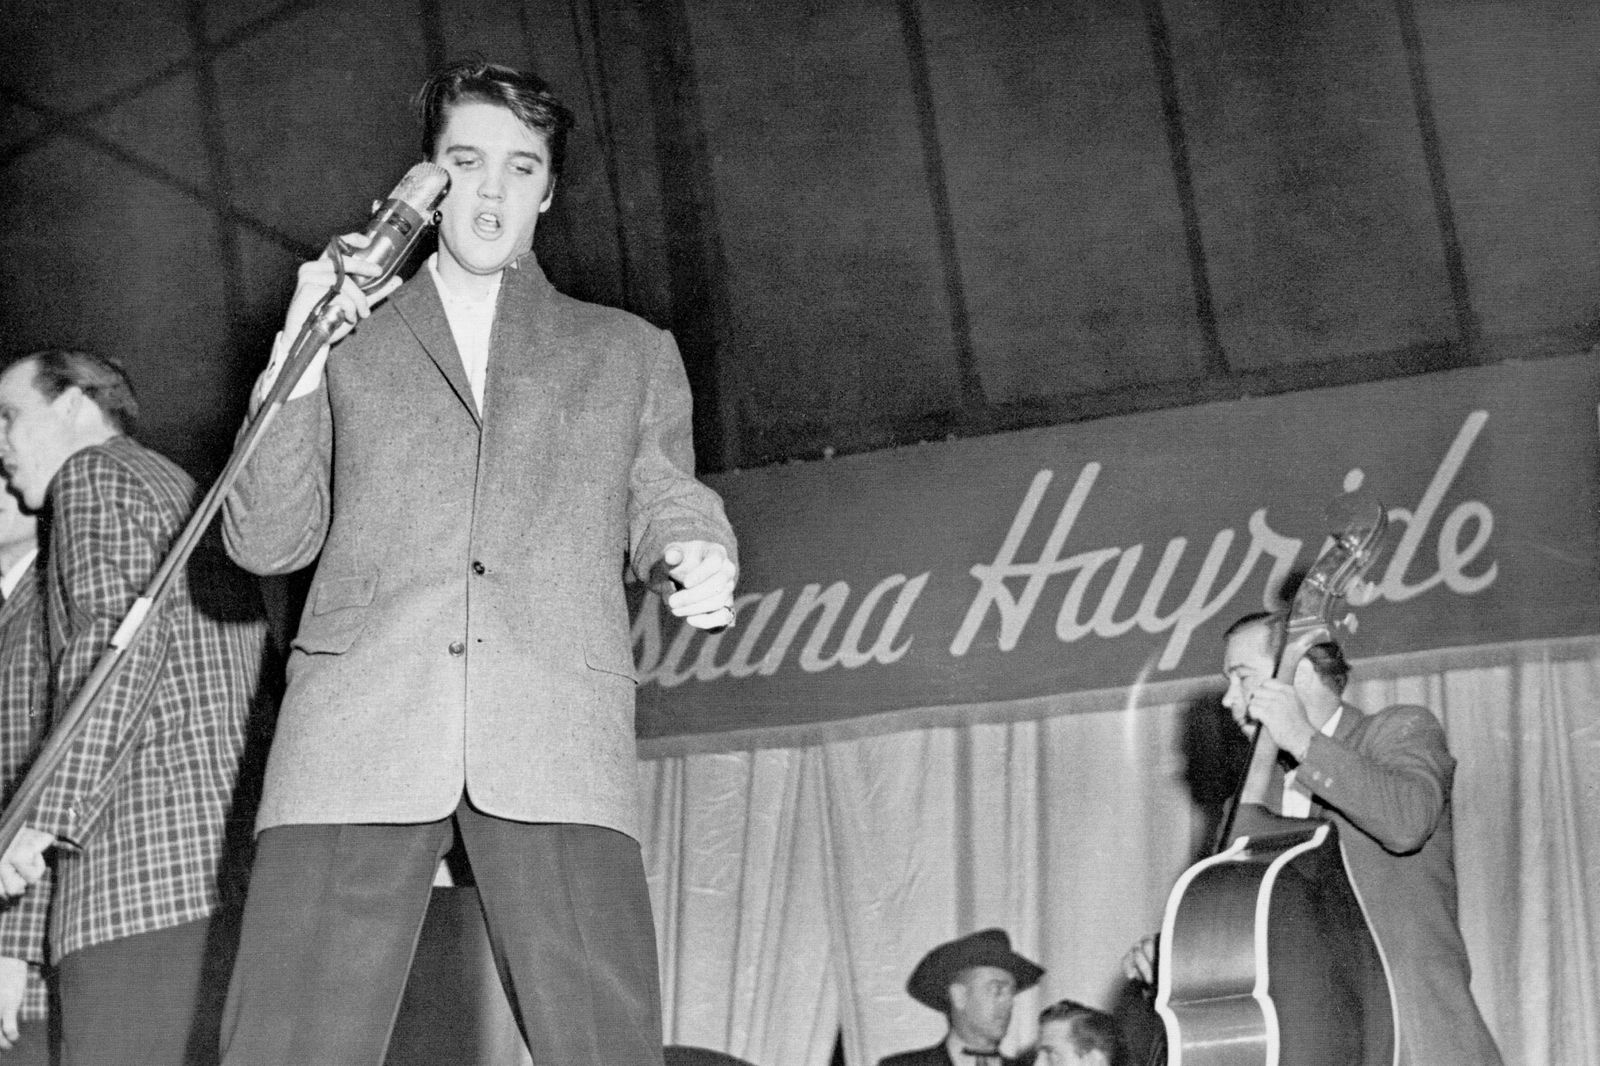 Elvis Presley on the Louisiana Hayride tour